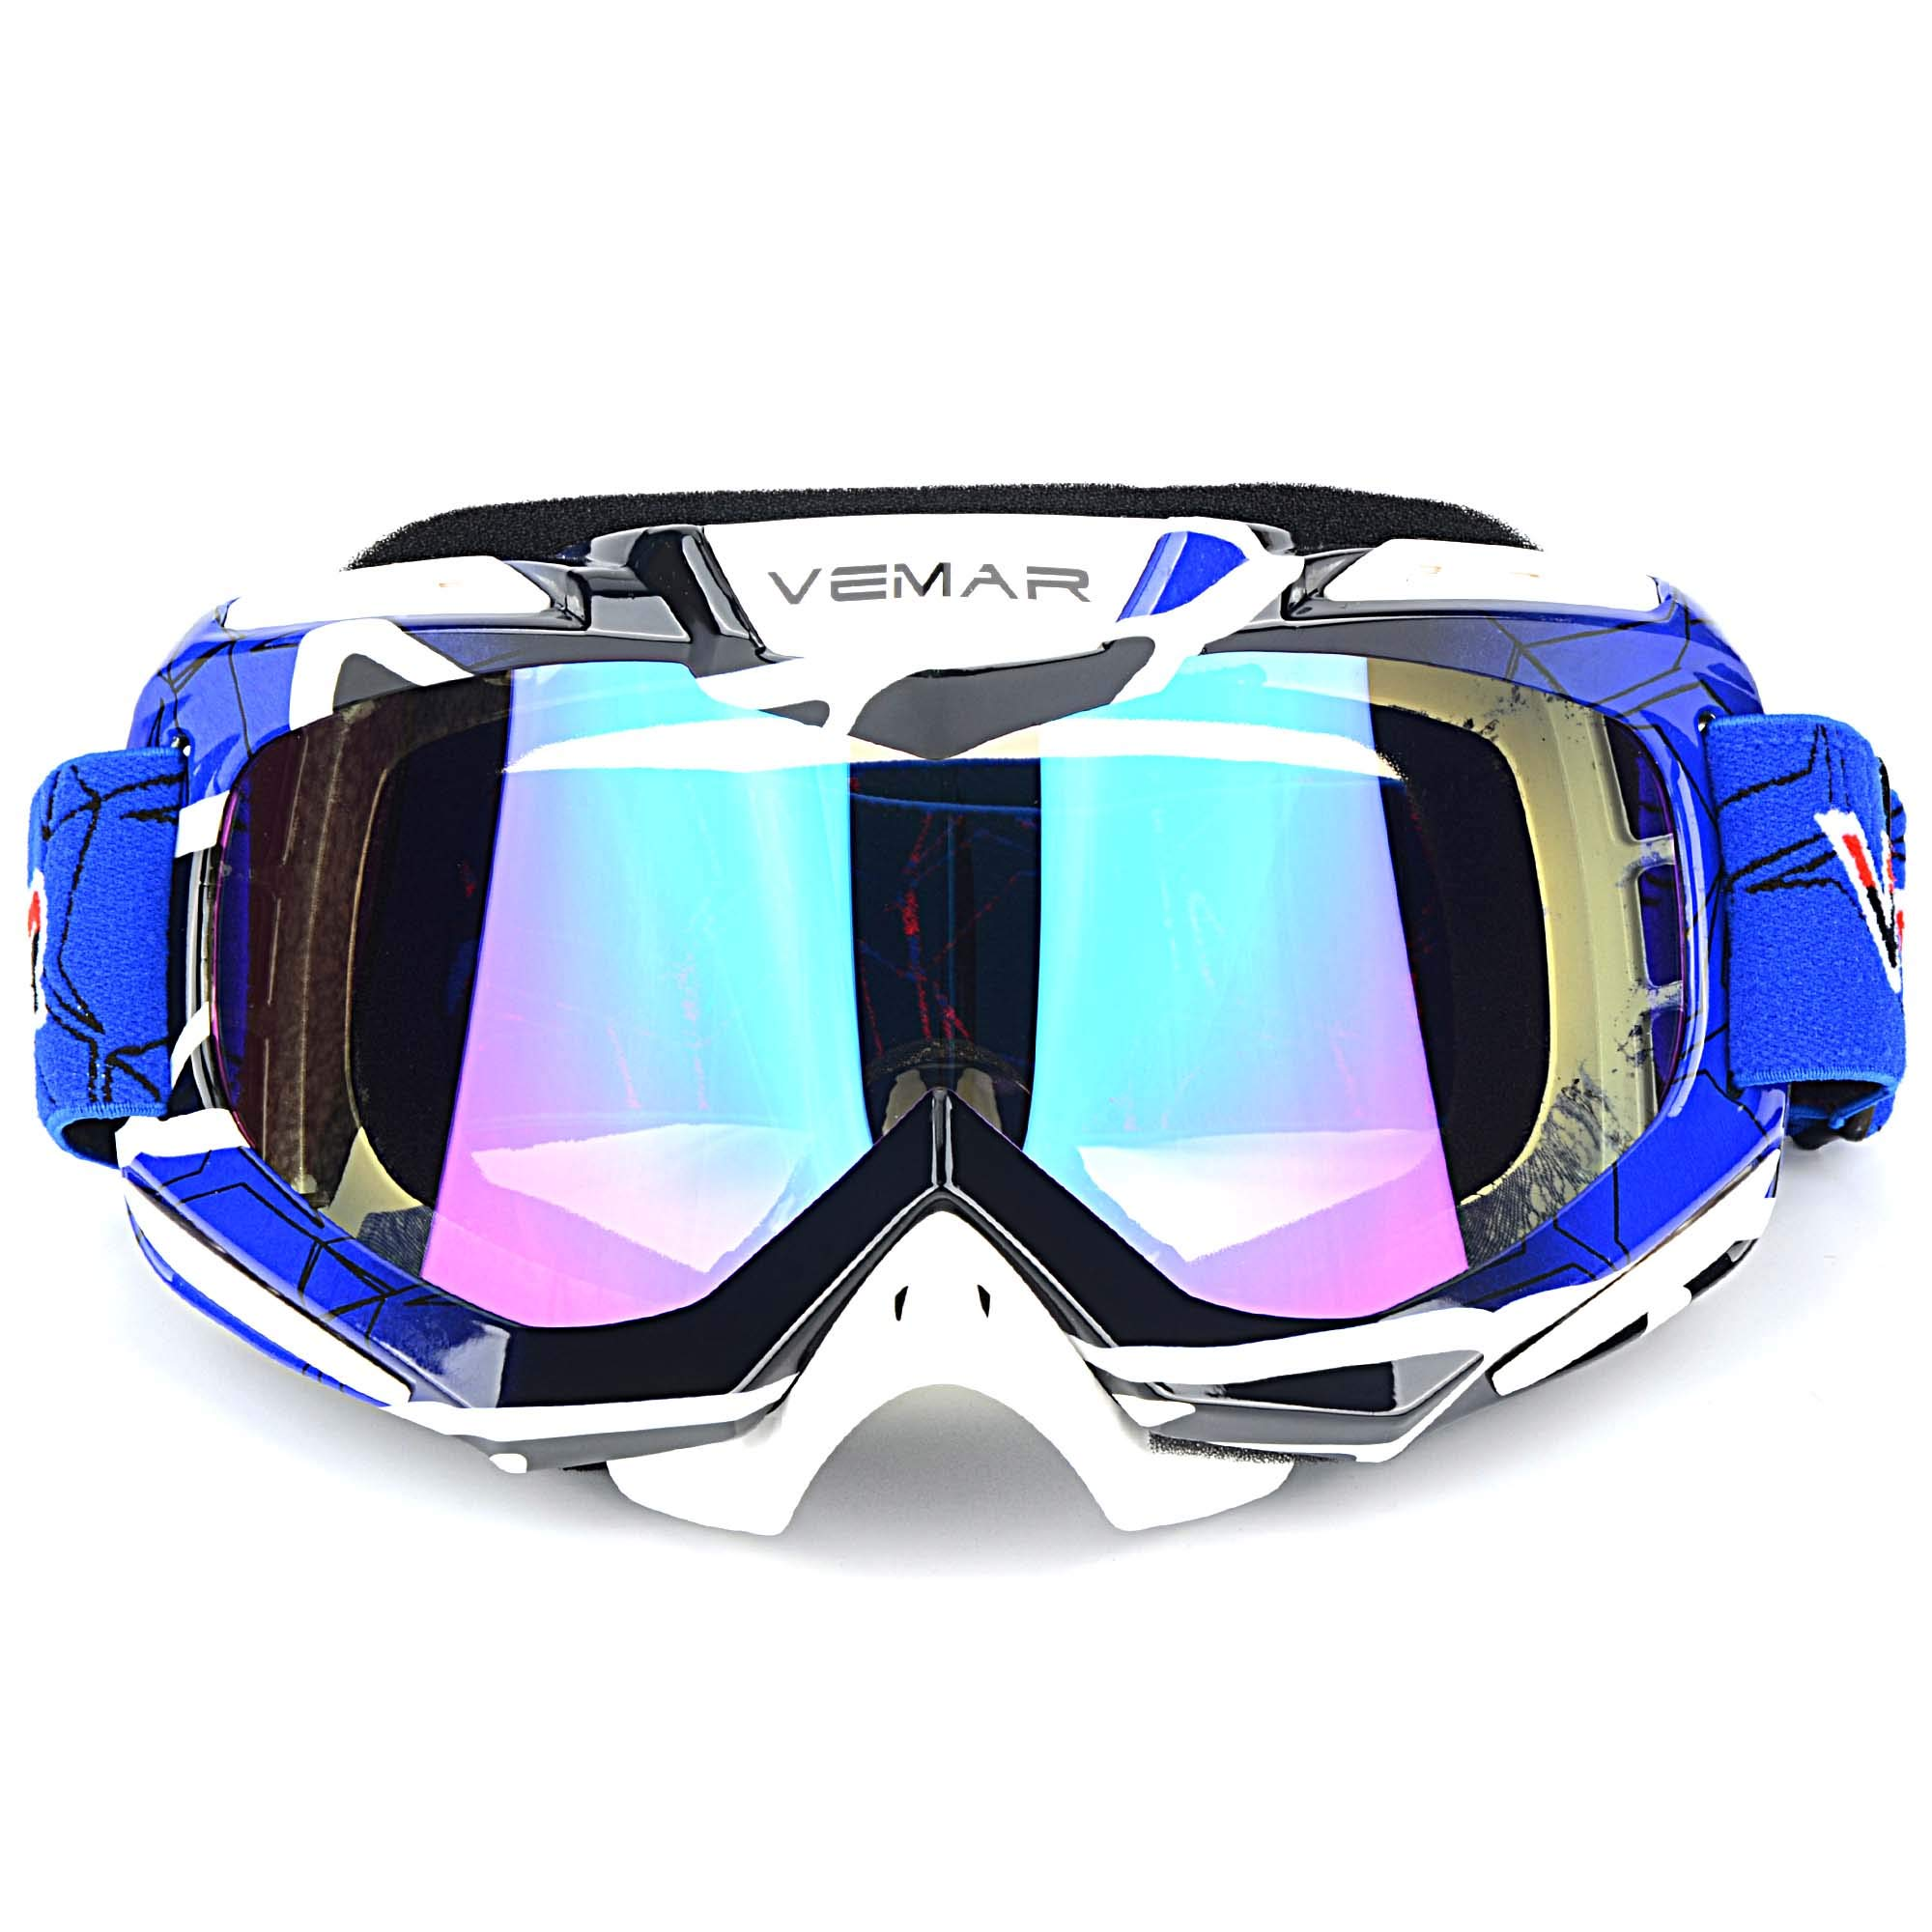 Polarized Sport Motorcycle Motocross Goggles ATV Racing Goggles Dirt Bike Tactical Riding Motorbike Goggle Glasses, Bendable Windproof Dustproof Scratch Resistant Protective Safety Glasses (Blue) by Ubelly